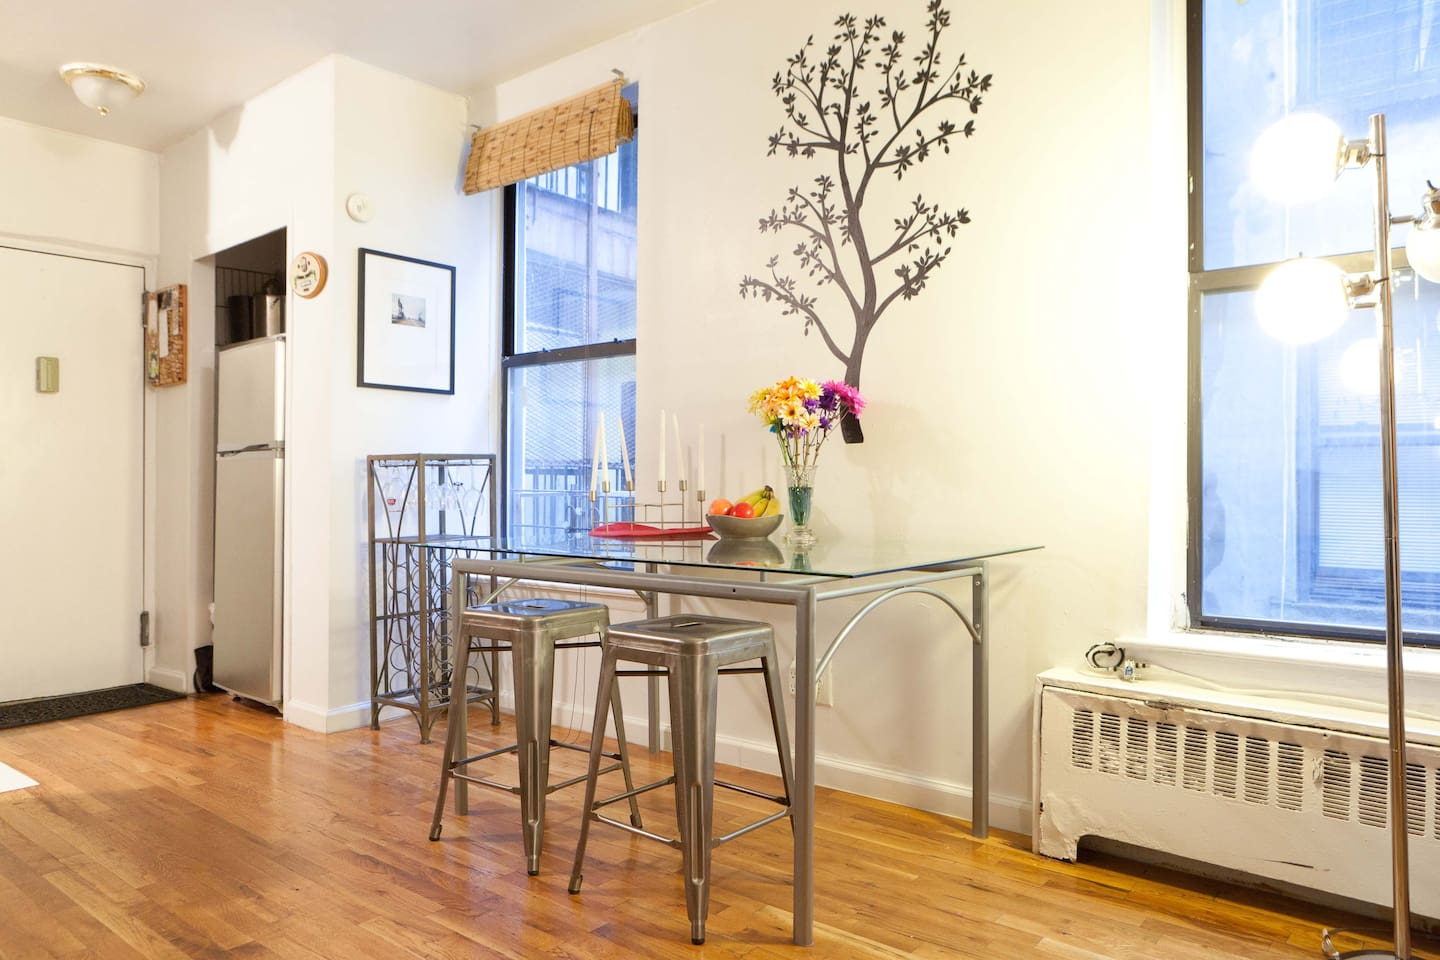 I am happy to offer my apartment as your temporary NYC home! I have hosted 100+ travelers here, and each one arrive as guests and leave as lifelong friends!